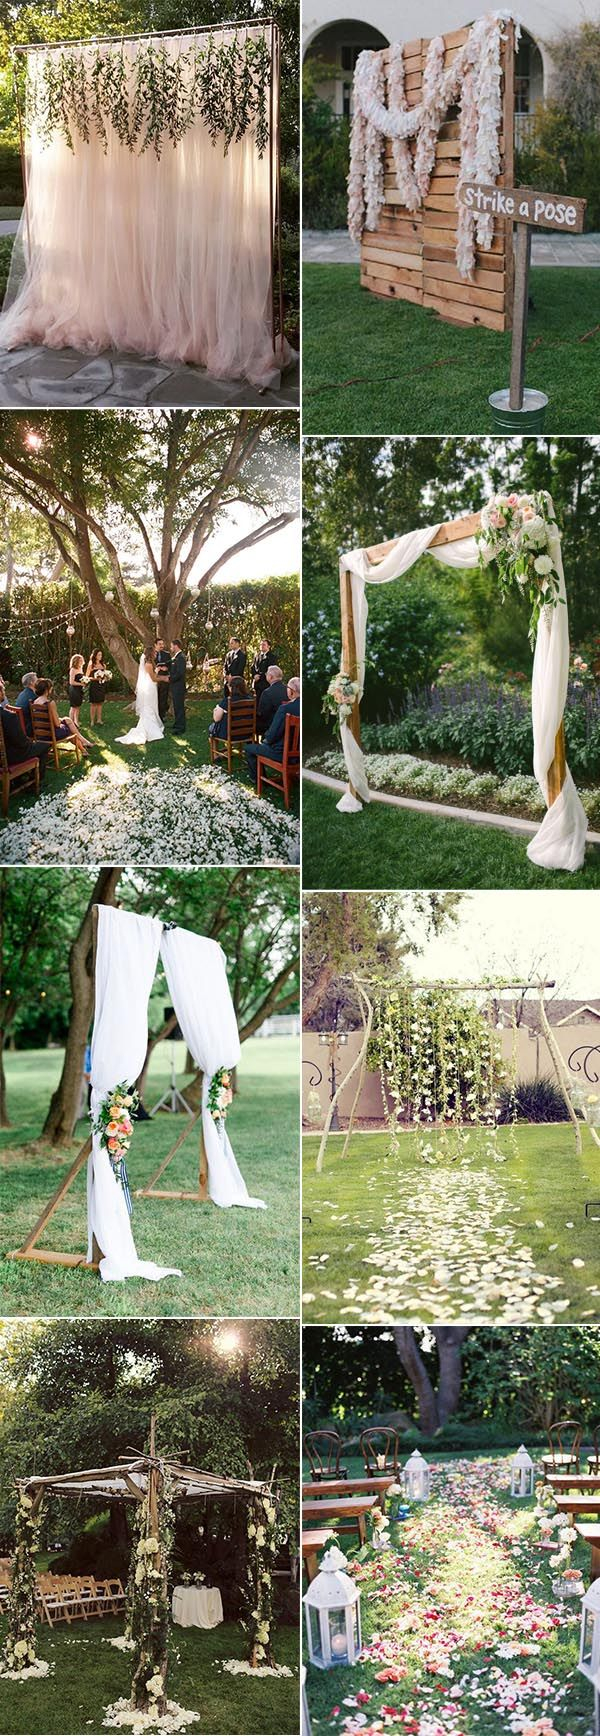 30 Sweet Ideas For Intimate Backyard Outdoor Weddings with Vintage Backyard Wedding Ideas